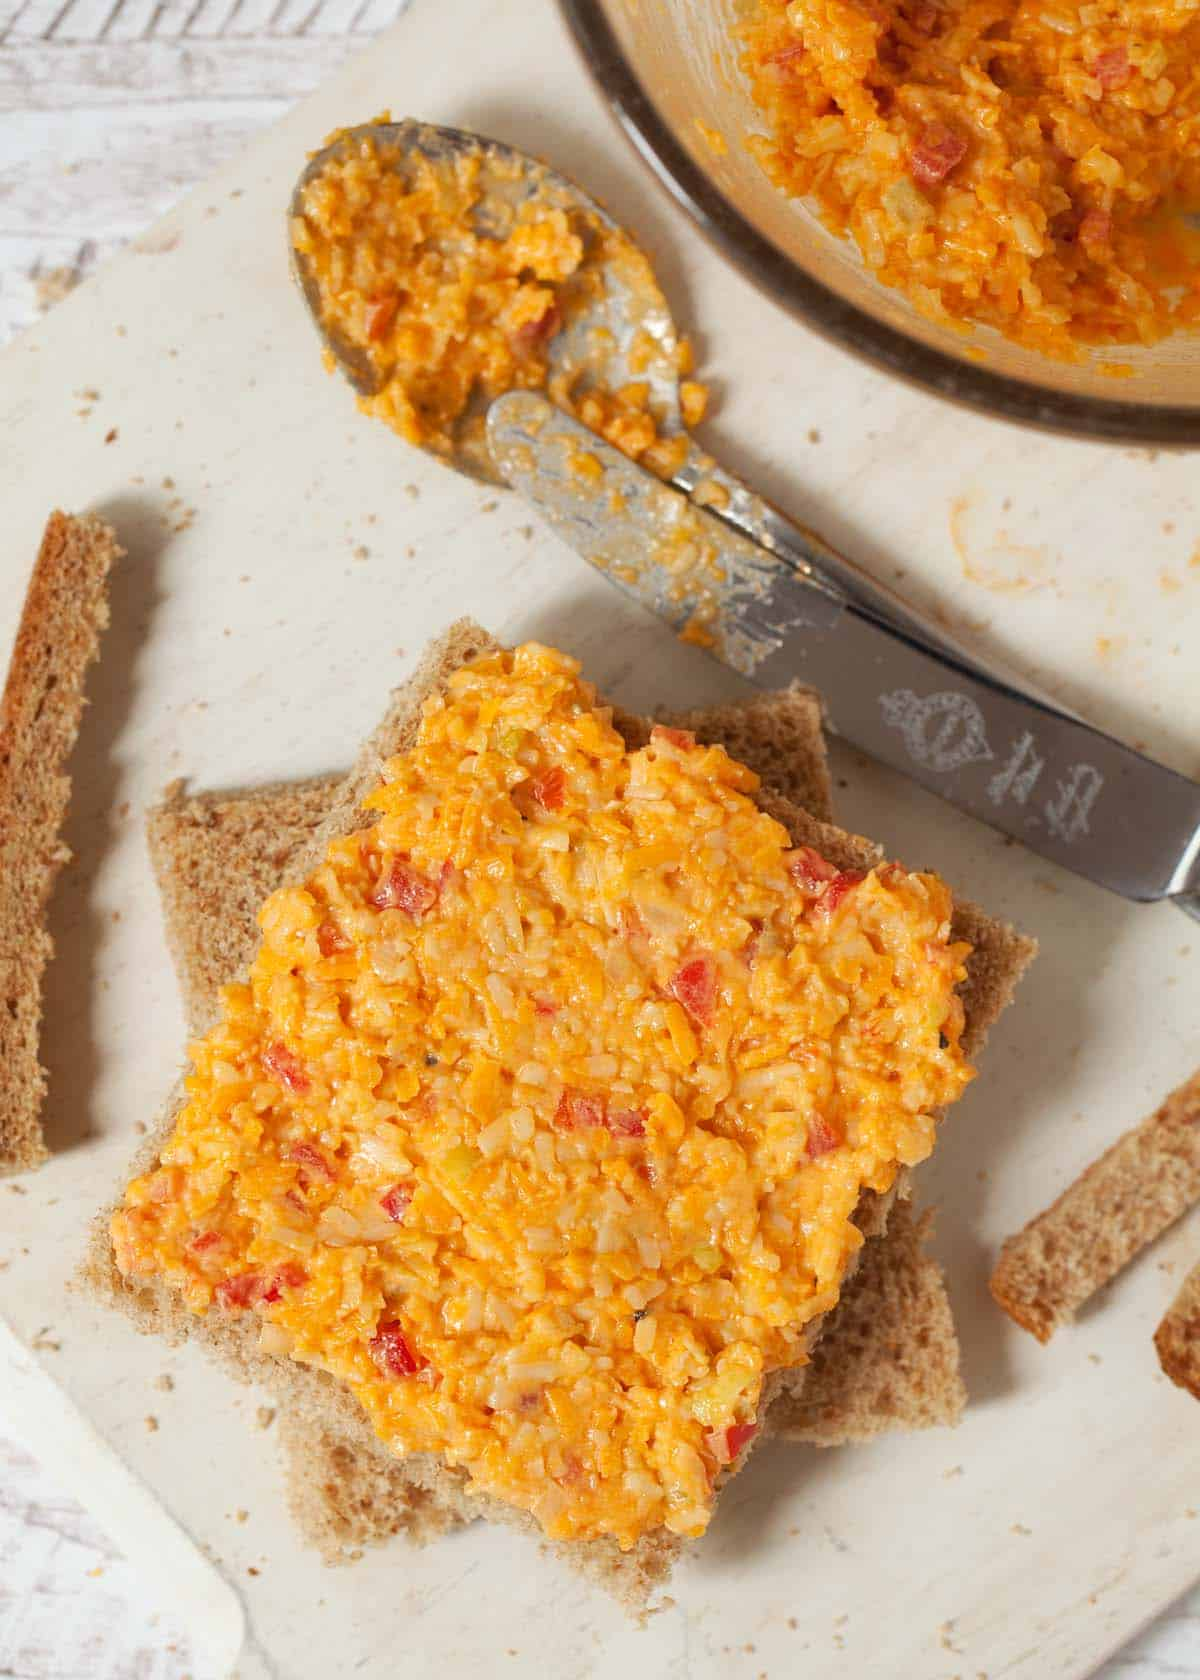 making sandwiches for afternoon tea: step three - spread out the cheese savoury sandwich filling